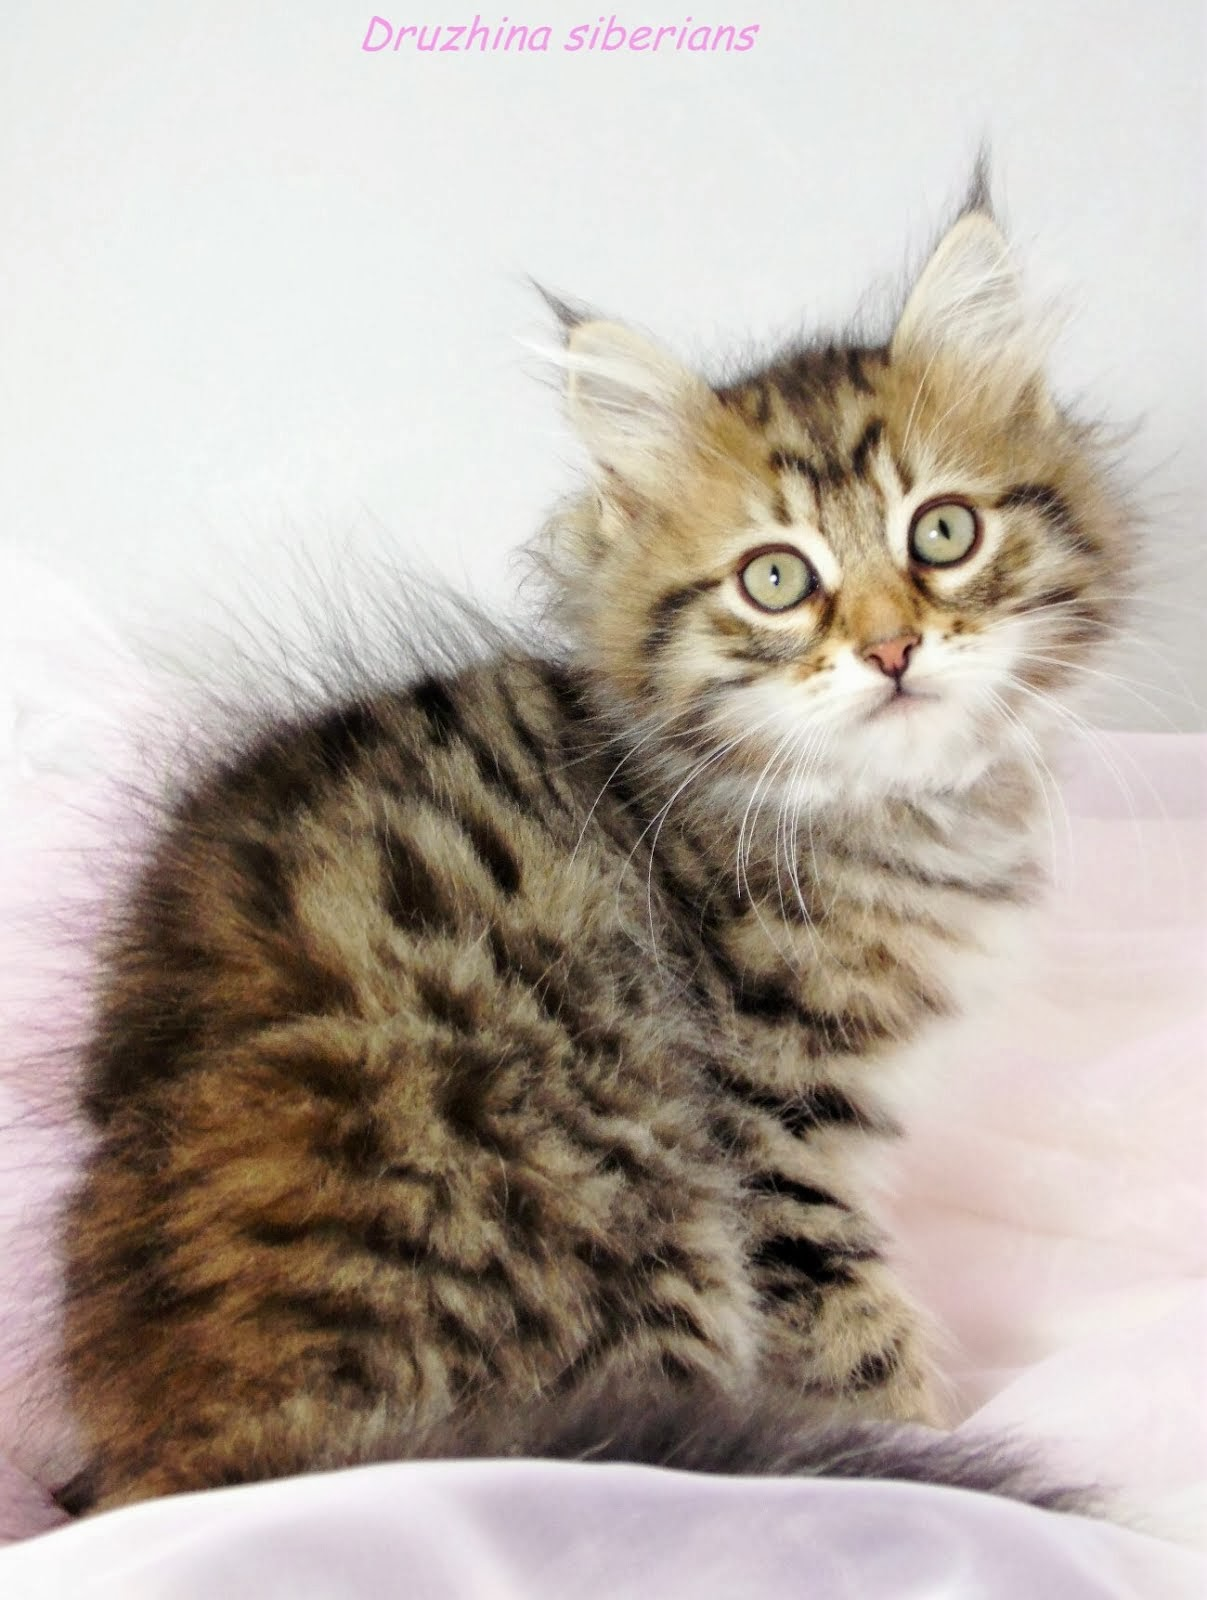 Druzhina Siberians: Available kittens ready end of July